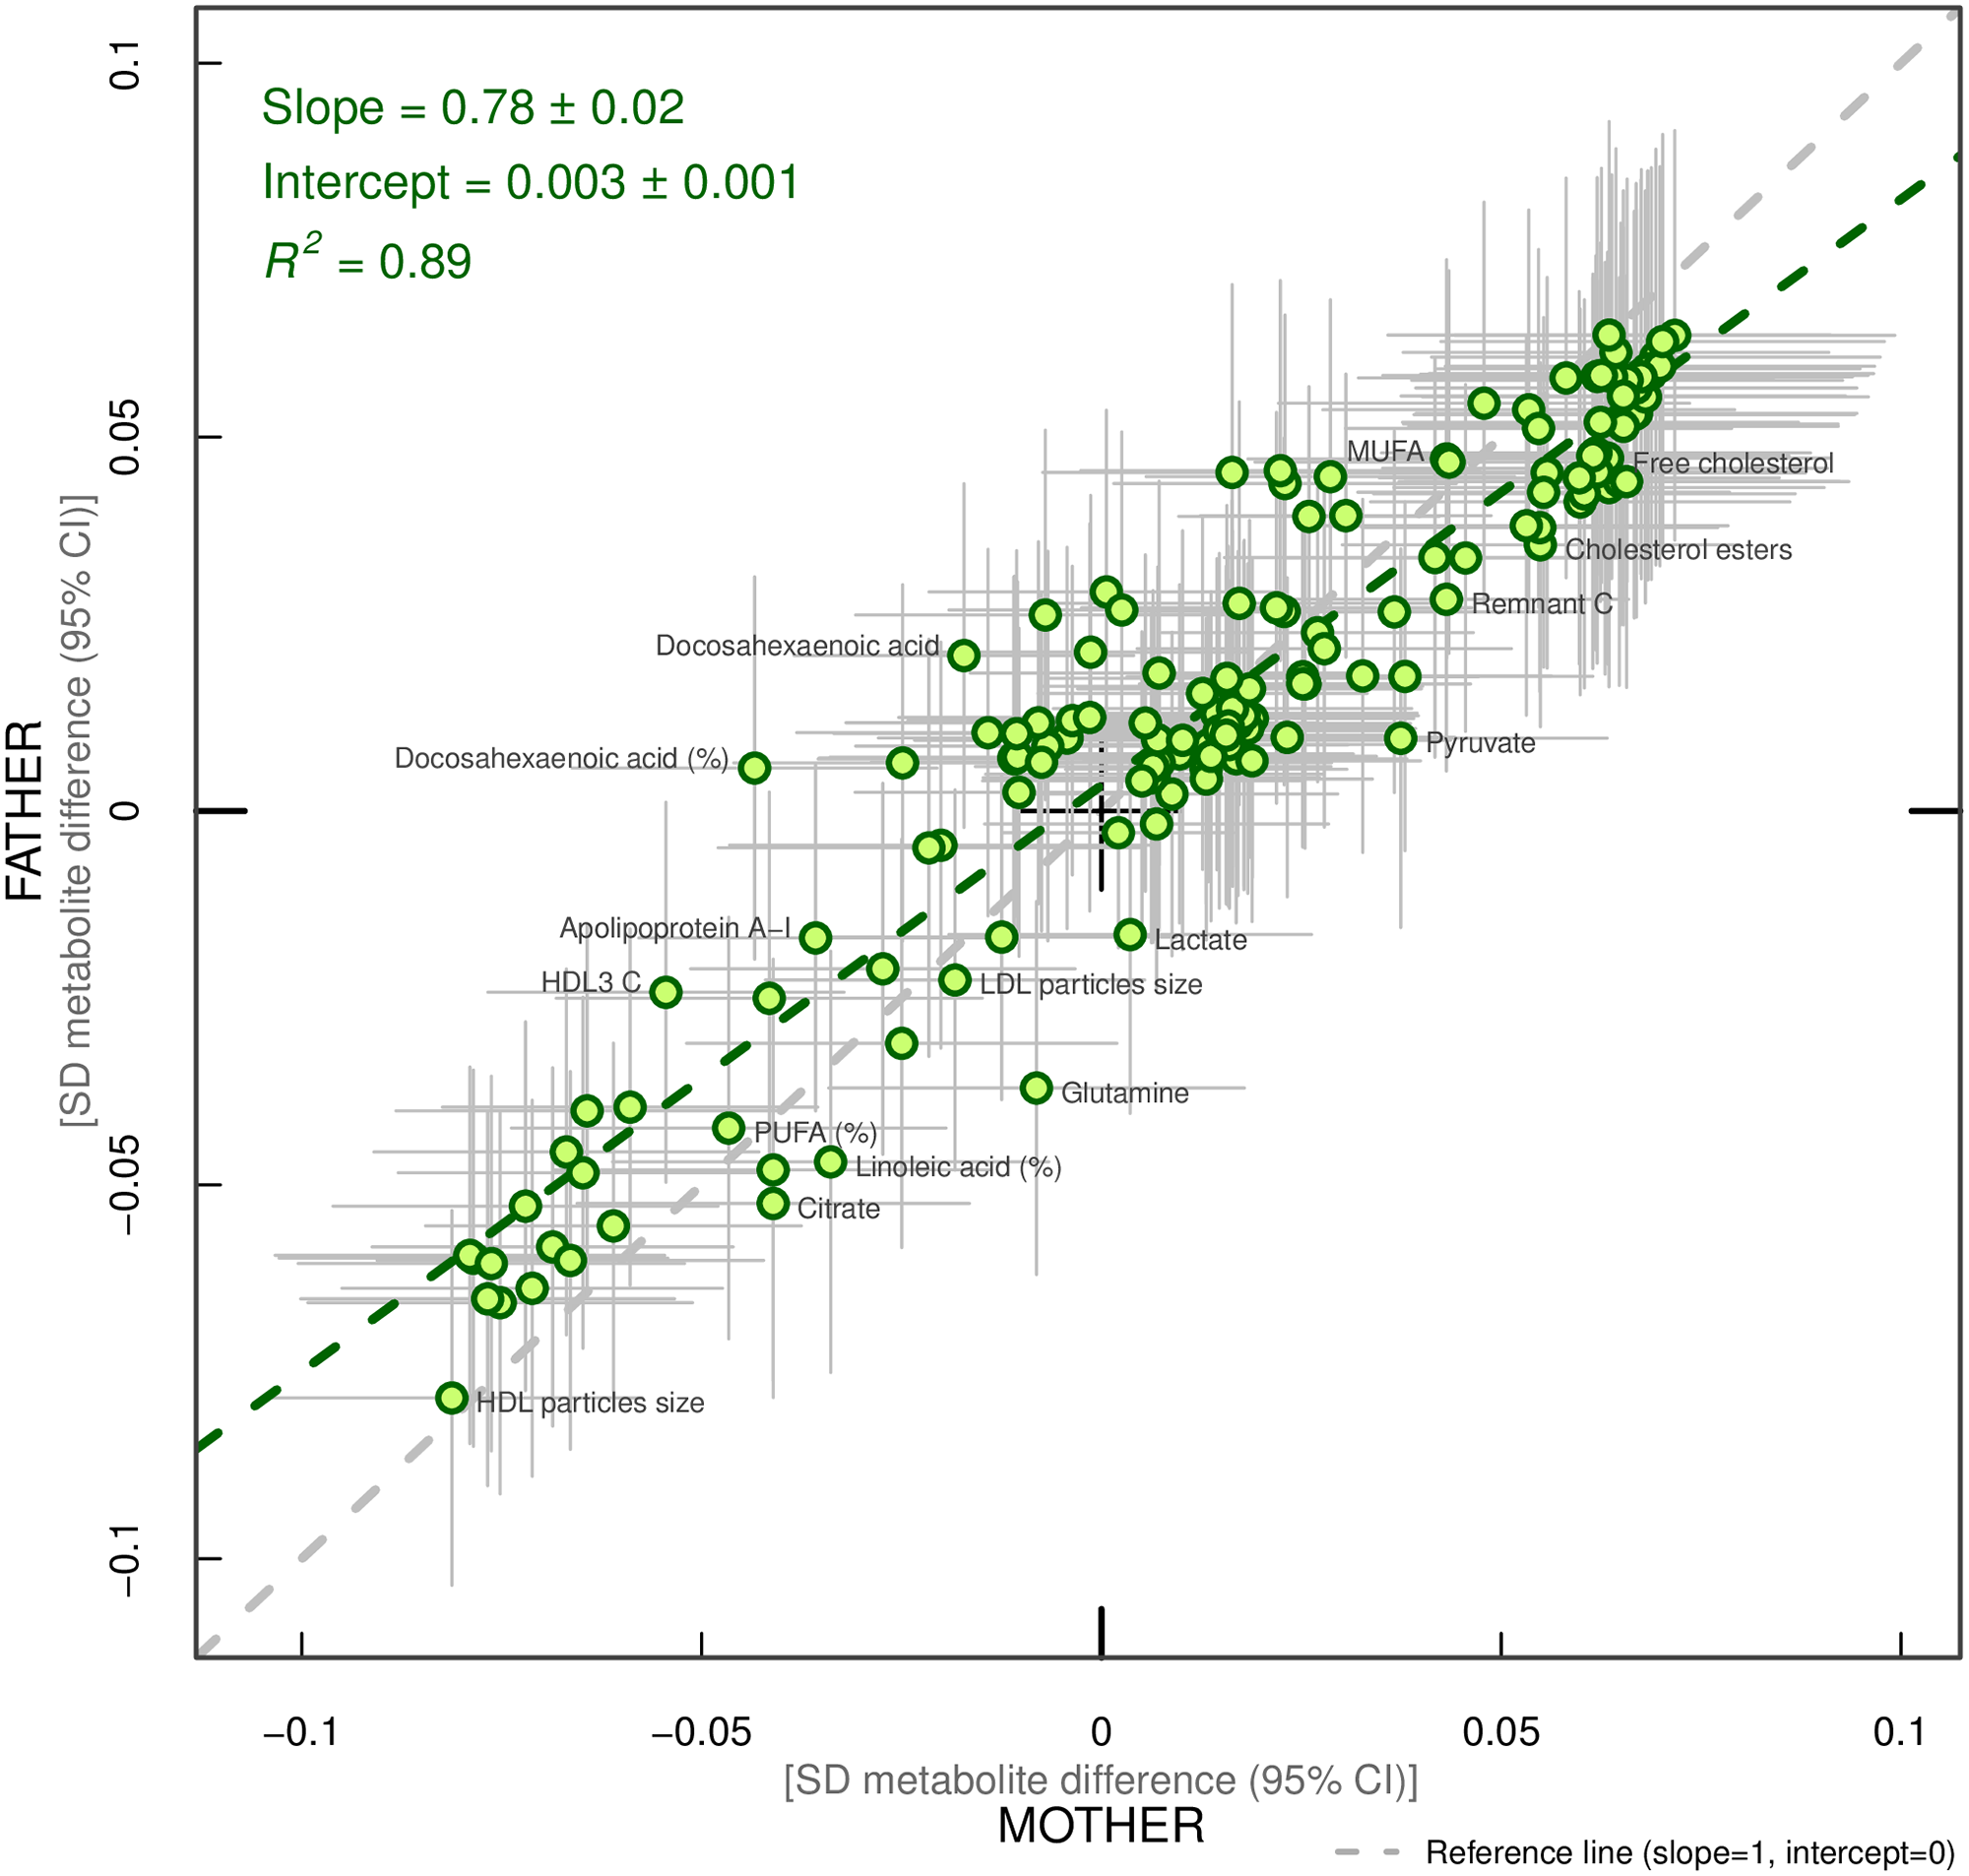 Linear fit between paternal and maternal models (green dashed line).